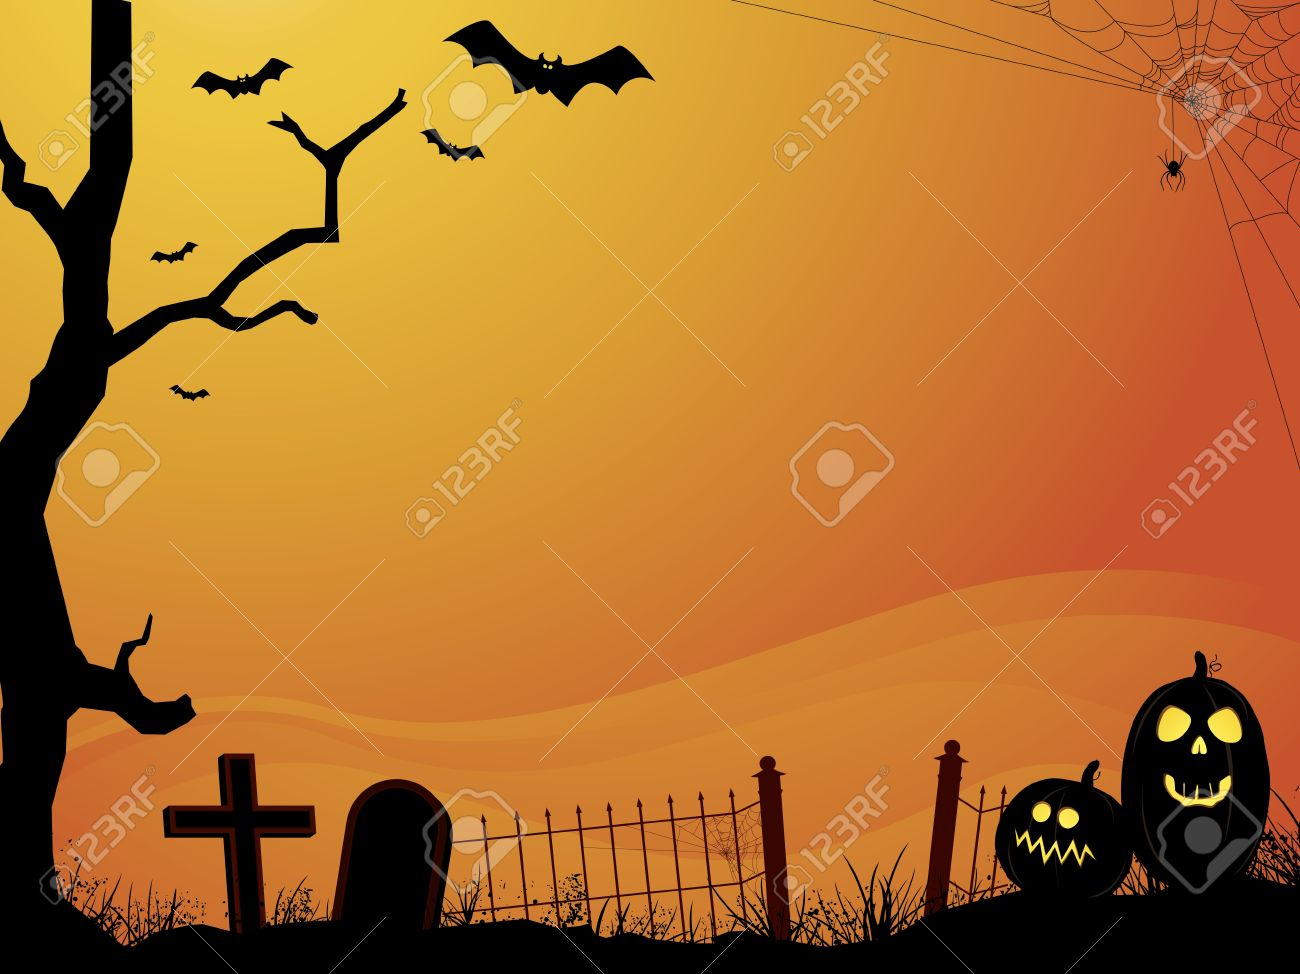 Sunset Halloween Scene With Cemetery Royalty Free Cliparts ...